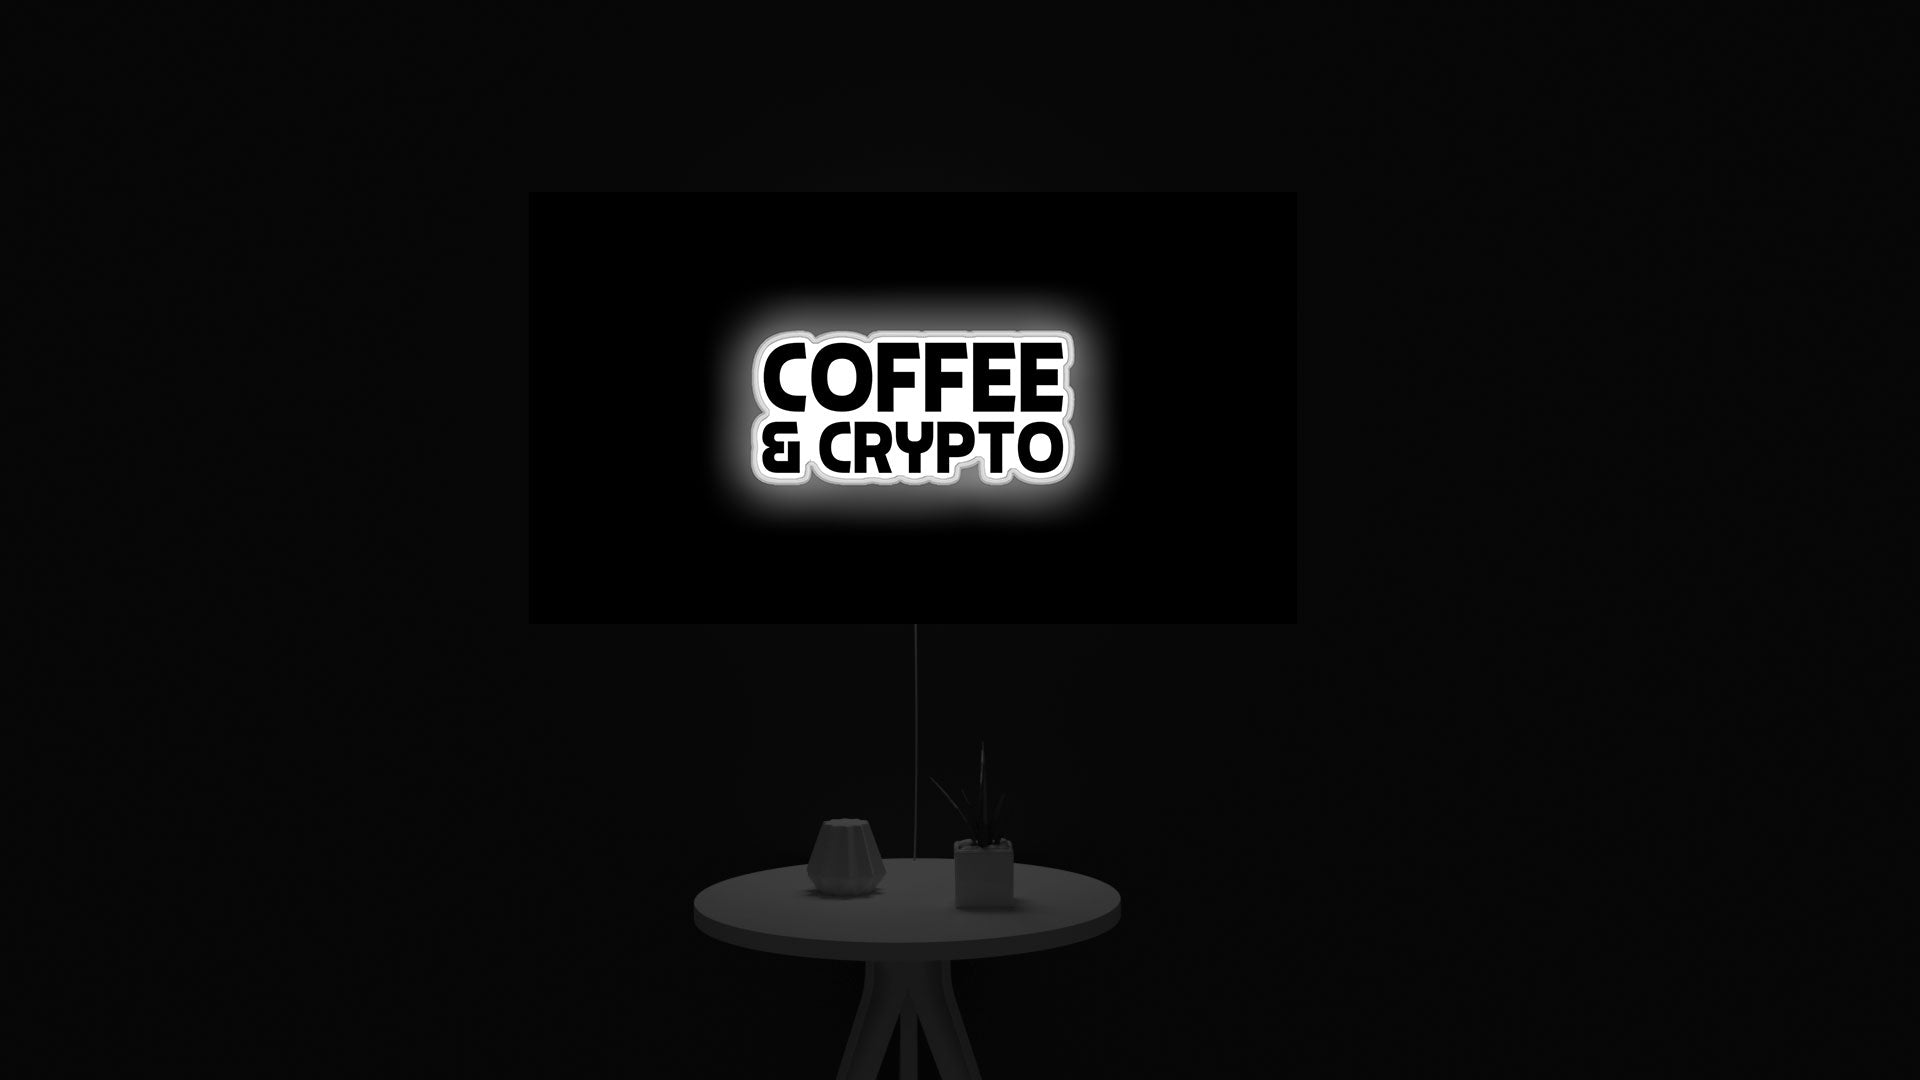 Coffee and Crypto Cryptocurrency HODL Gift Idea led light sign